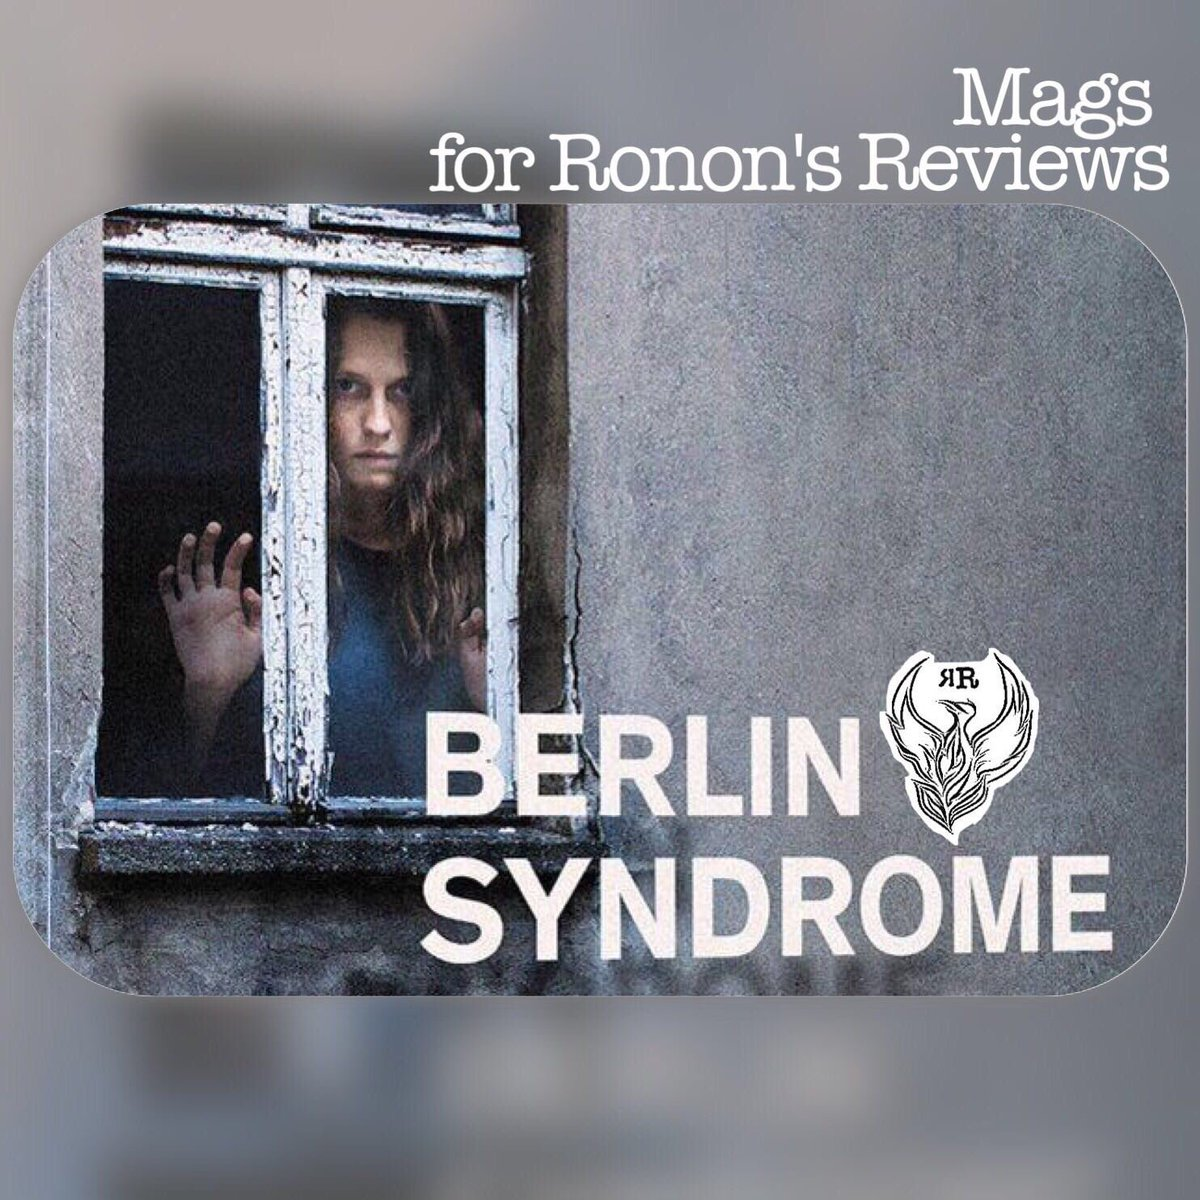 Today we have #berlinsyndrome an interesting tale of #lust #travel and #Stockholmsyndrome check it out here   http:// rononsreviews.com/reviews/cate-s hortlands-berlin-syndrome &nbsp; … <br>http://pic.twitter.com/KYBwAVbFxq